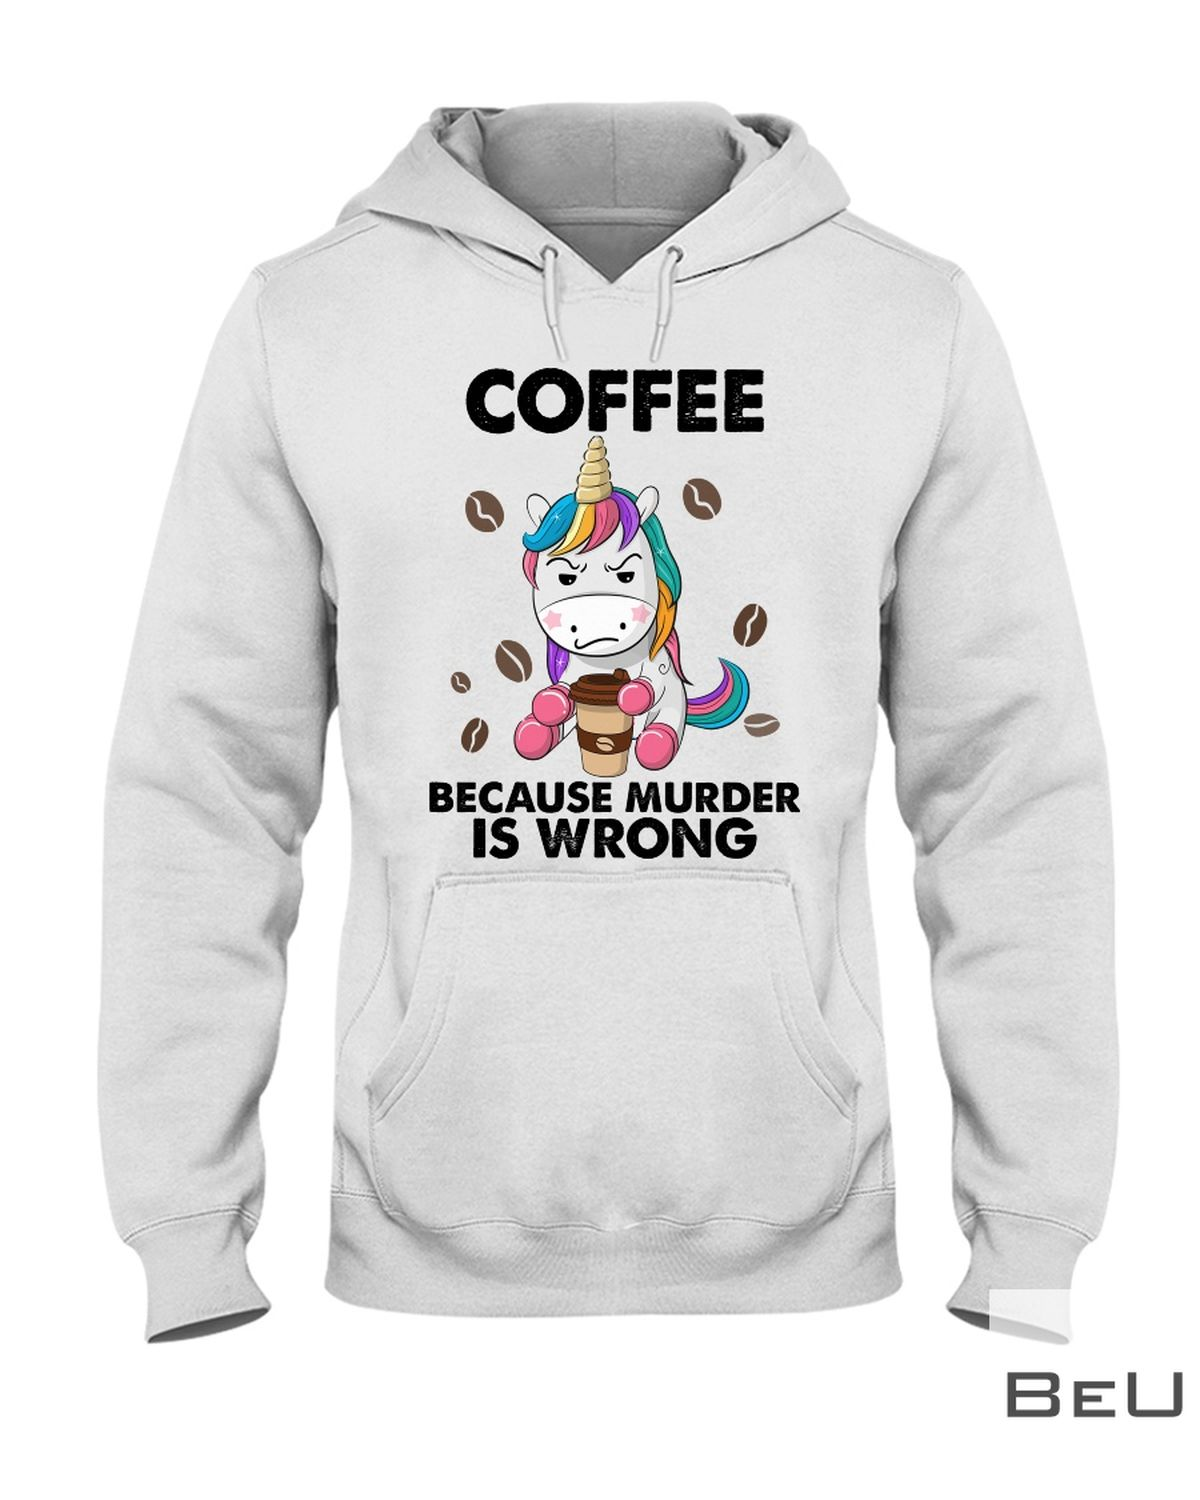 Coffee Because Murder Is Wrong Shirtx